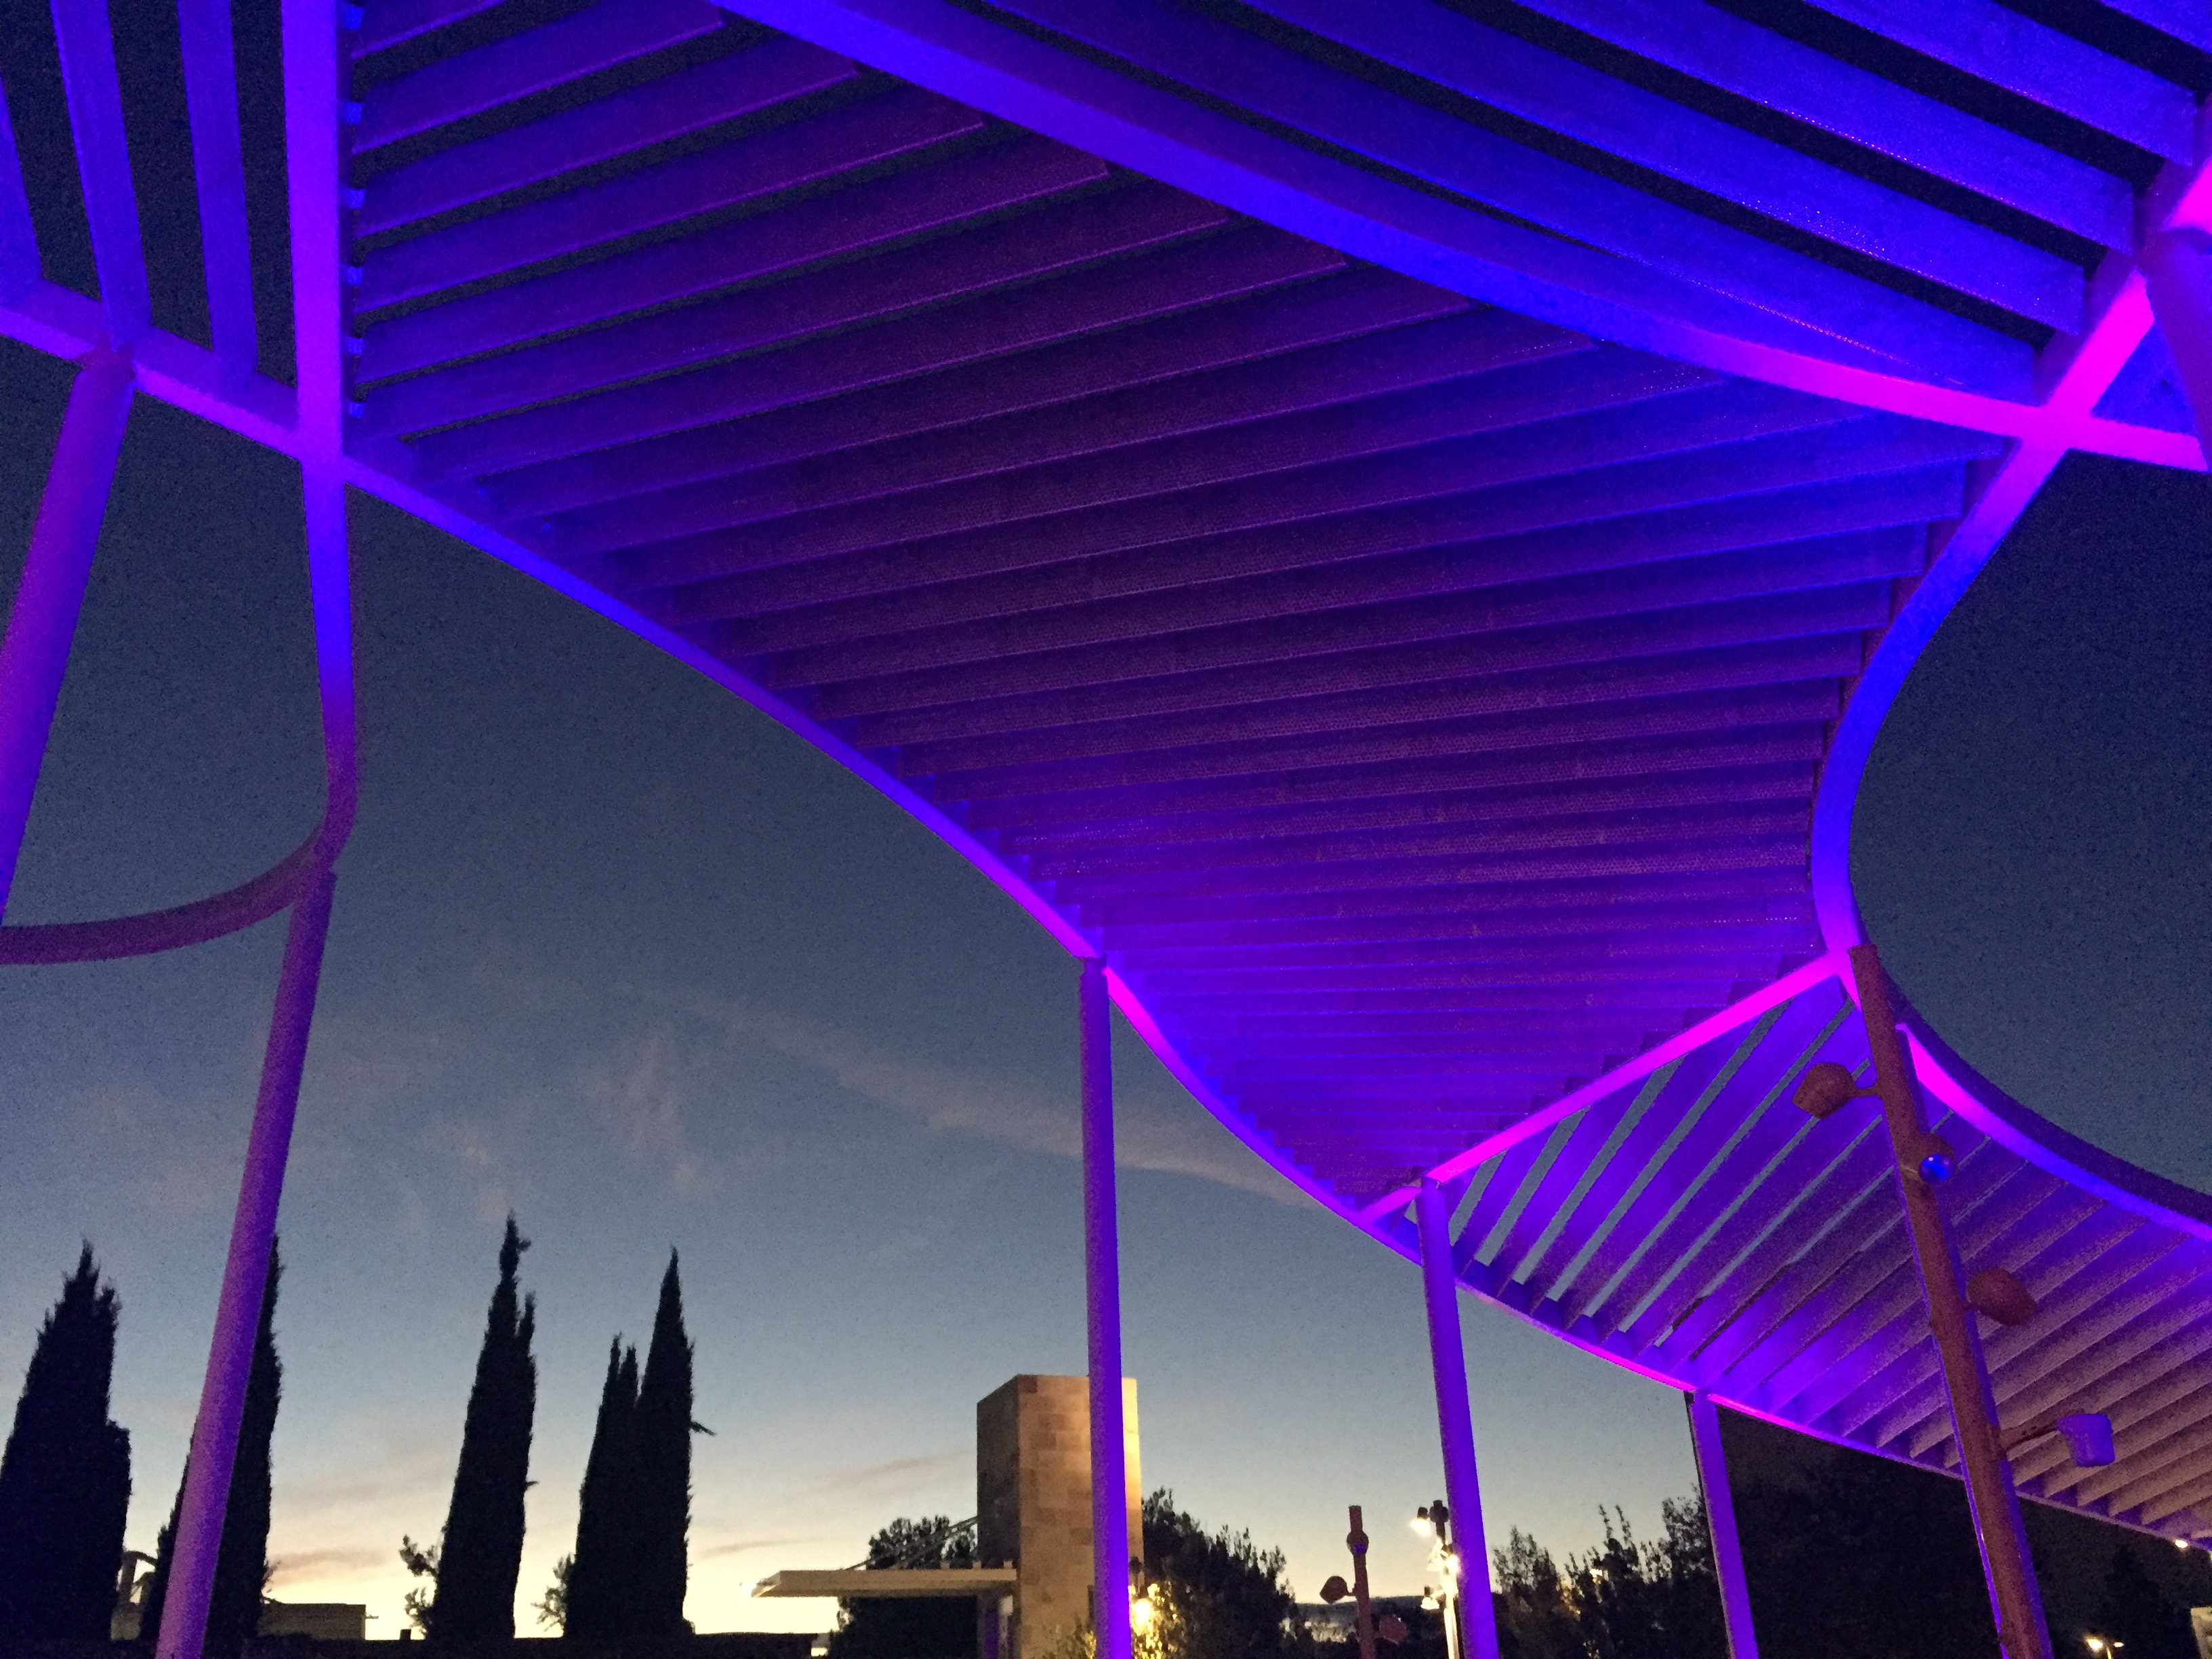 Photo of the museum canopy lit with purple light at night.